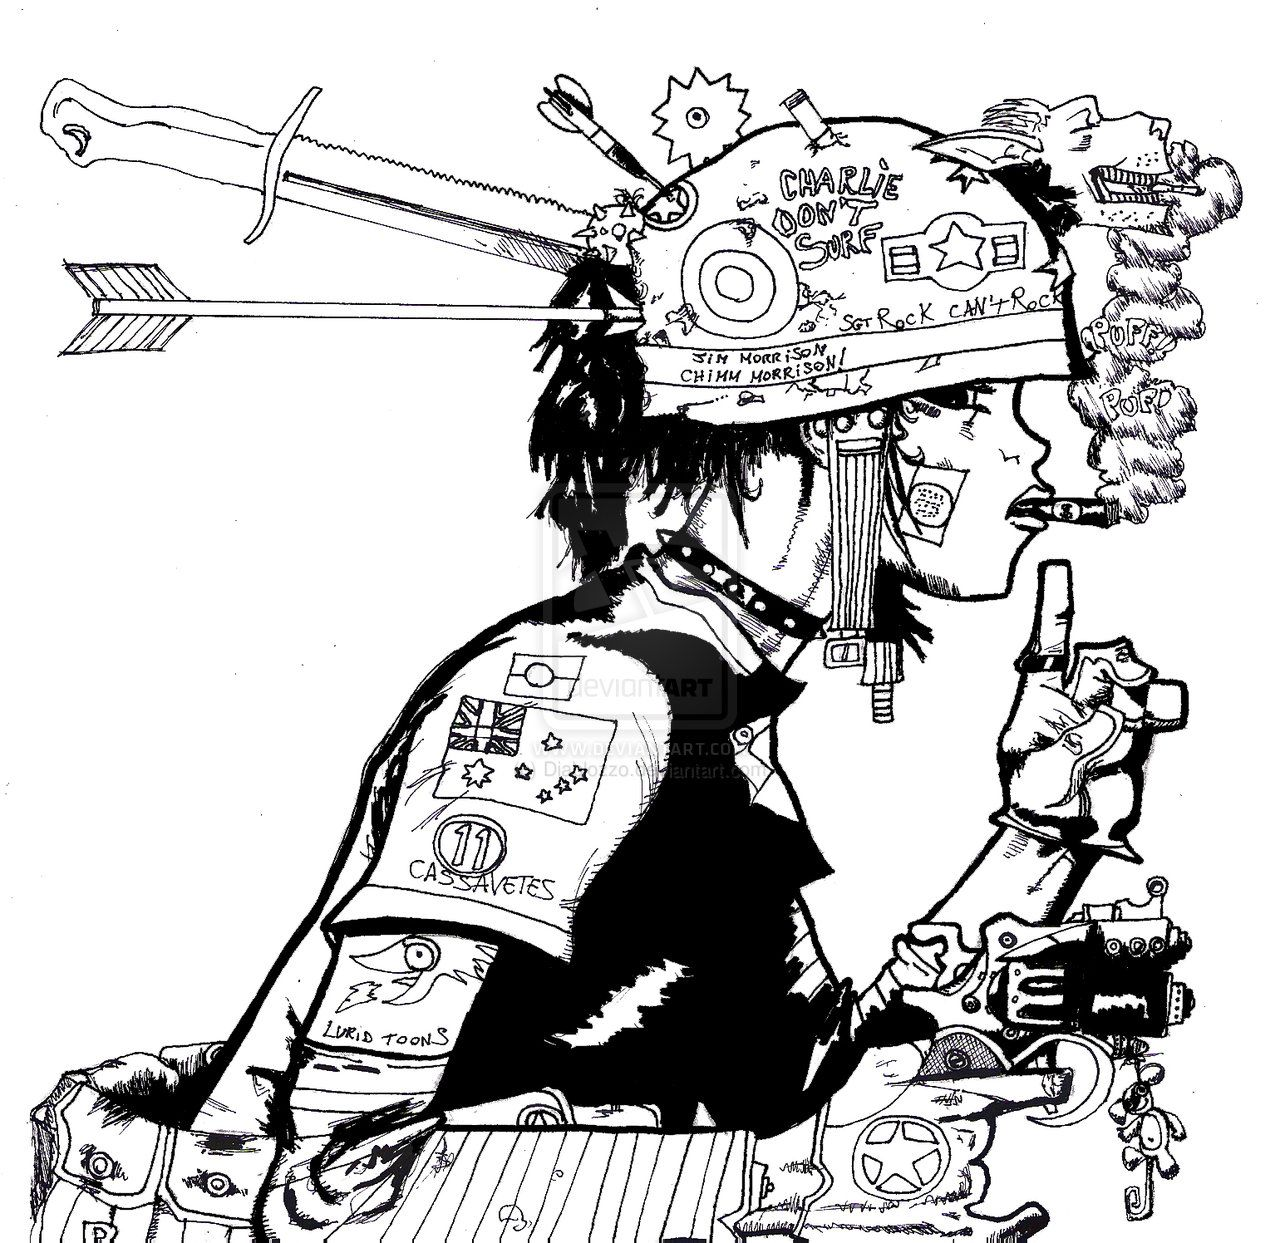 tank girl coloring page - Google Search | A curated group of ...